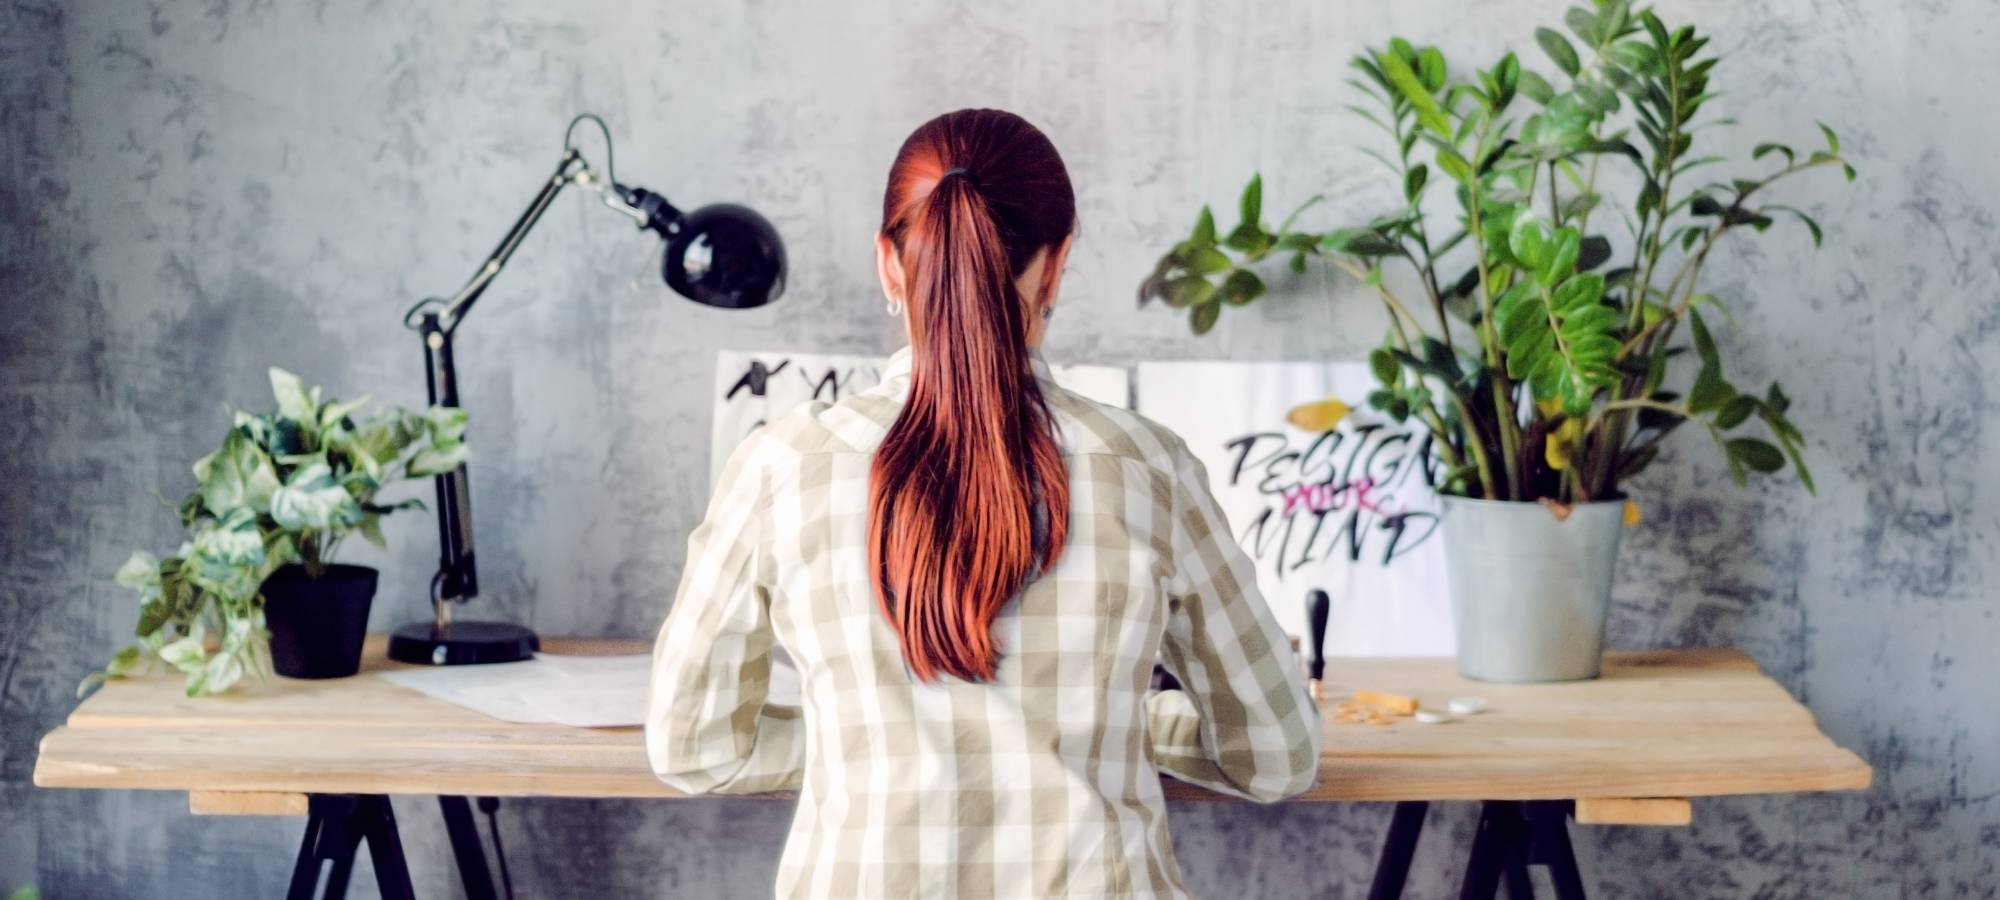 Woman with red hair drawing calligraphy with a desk lamp